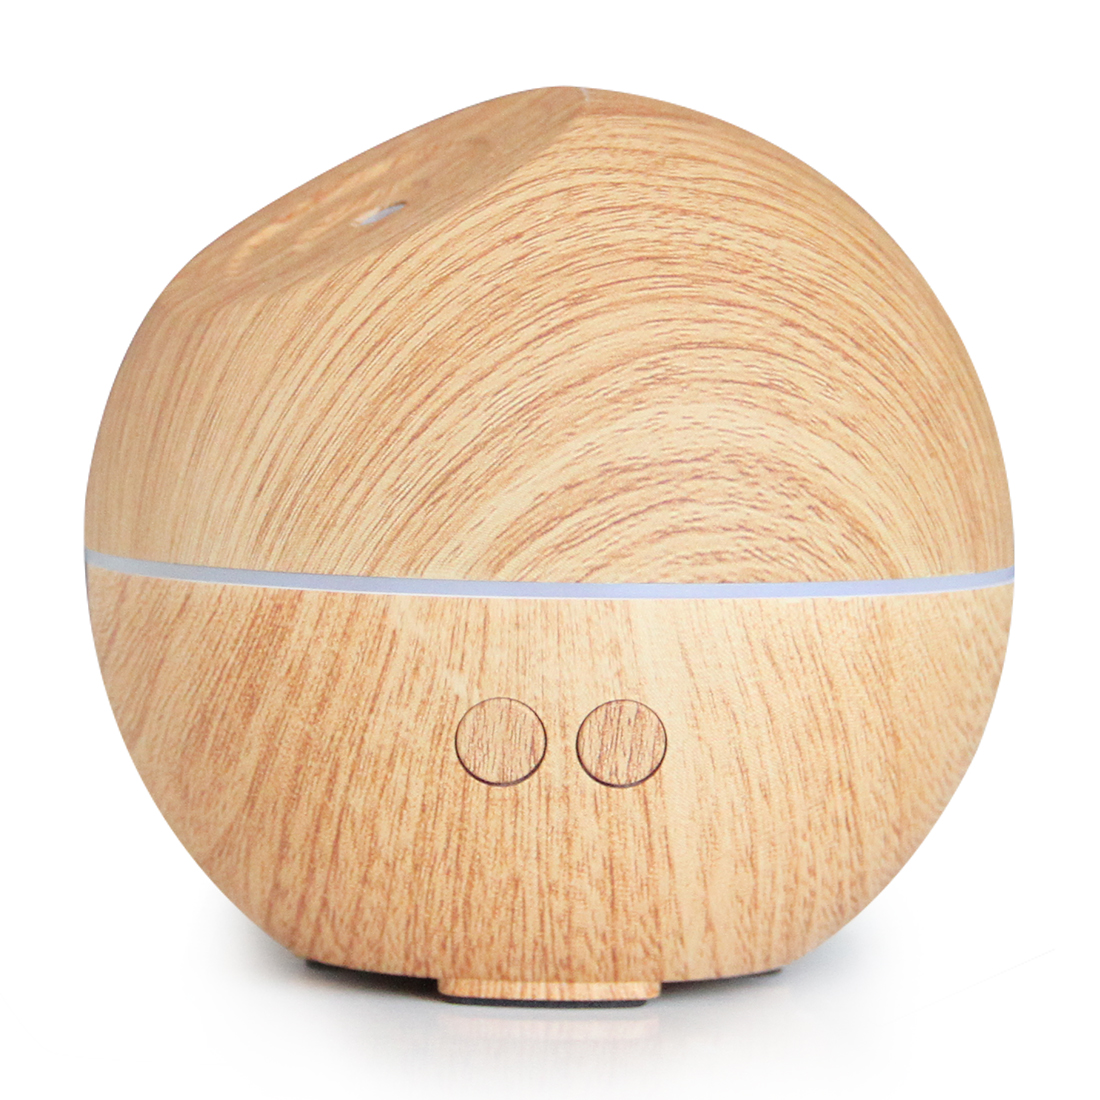 Portable Cool Mist Wood Grain Electric Ultrasonic Warm Light Wooden Aromatherapy Essential Oil Aroma Diffuser